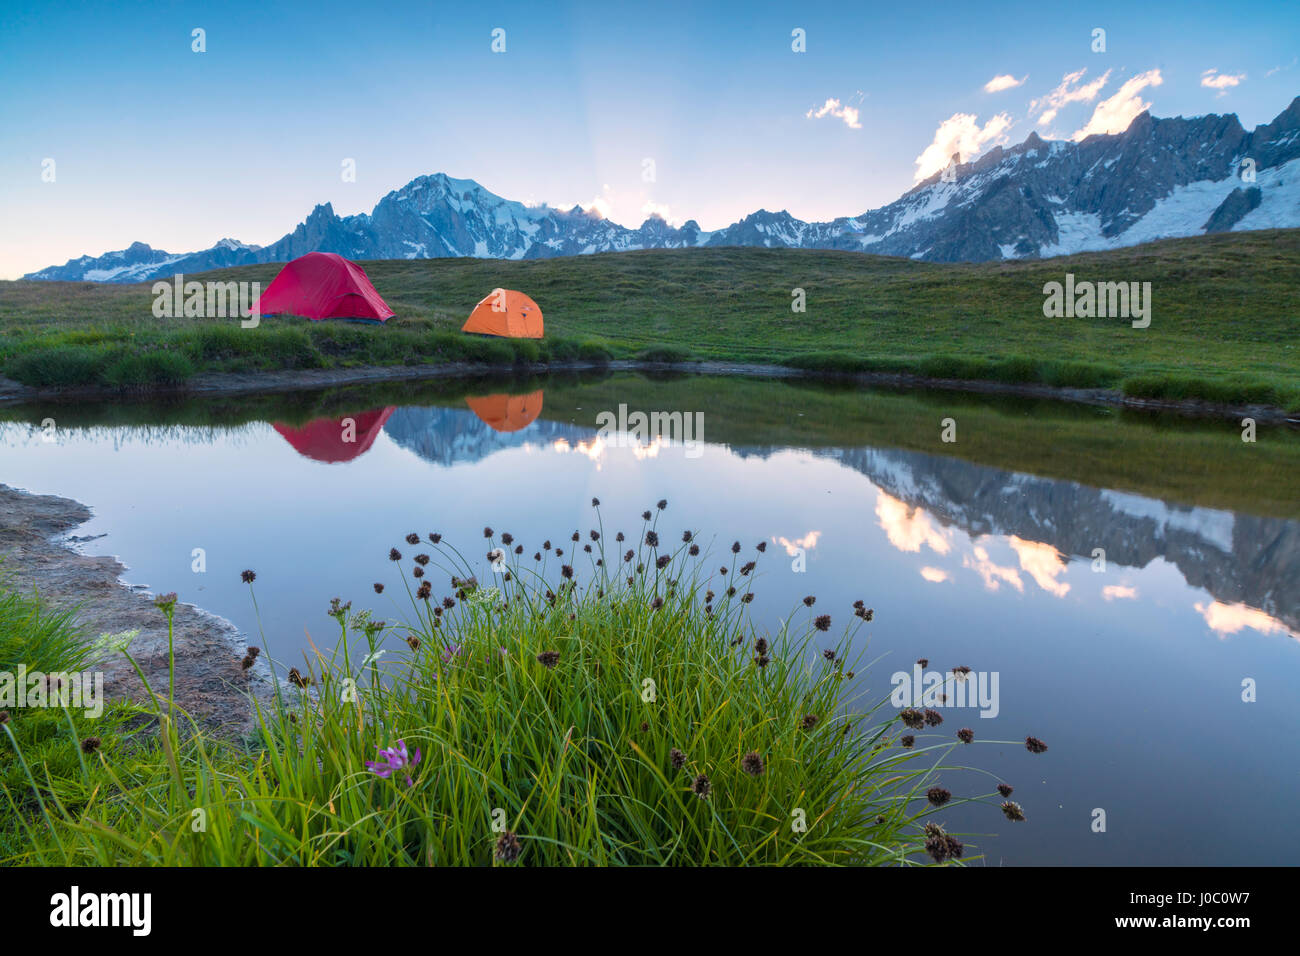 C&ing tents in the green meadows surrounded by flowers and alpine lake Mont De La Saxe Courmayeur Aosta Valley Italy & Camping tents in the green meadows surrounded by flowers and ...